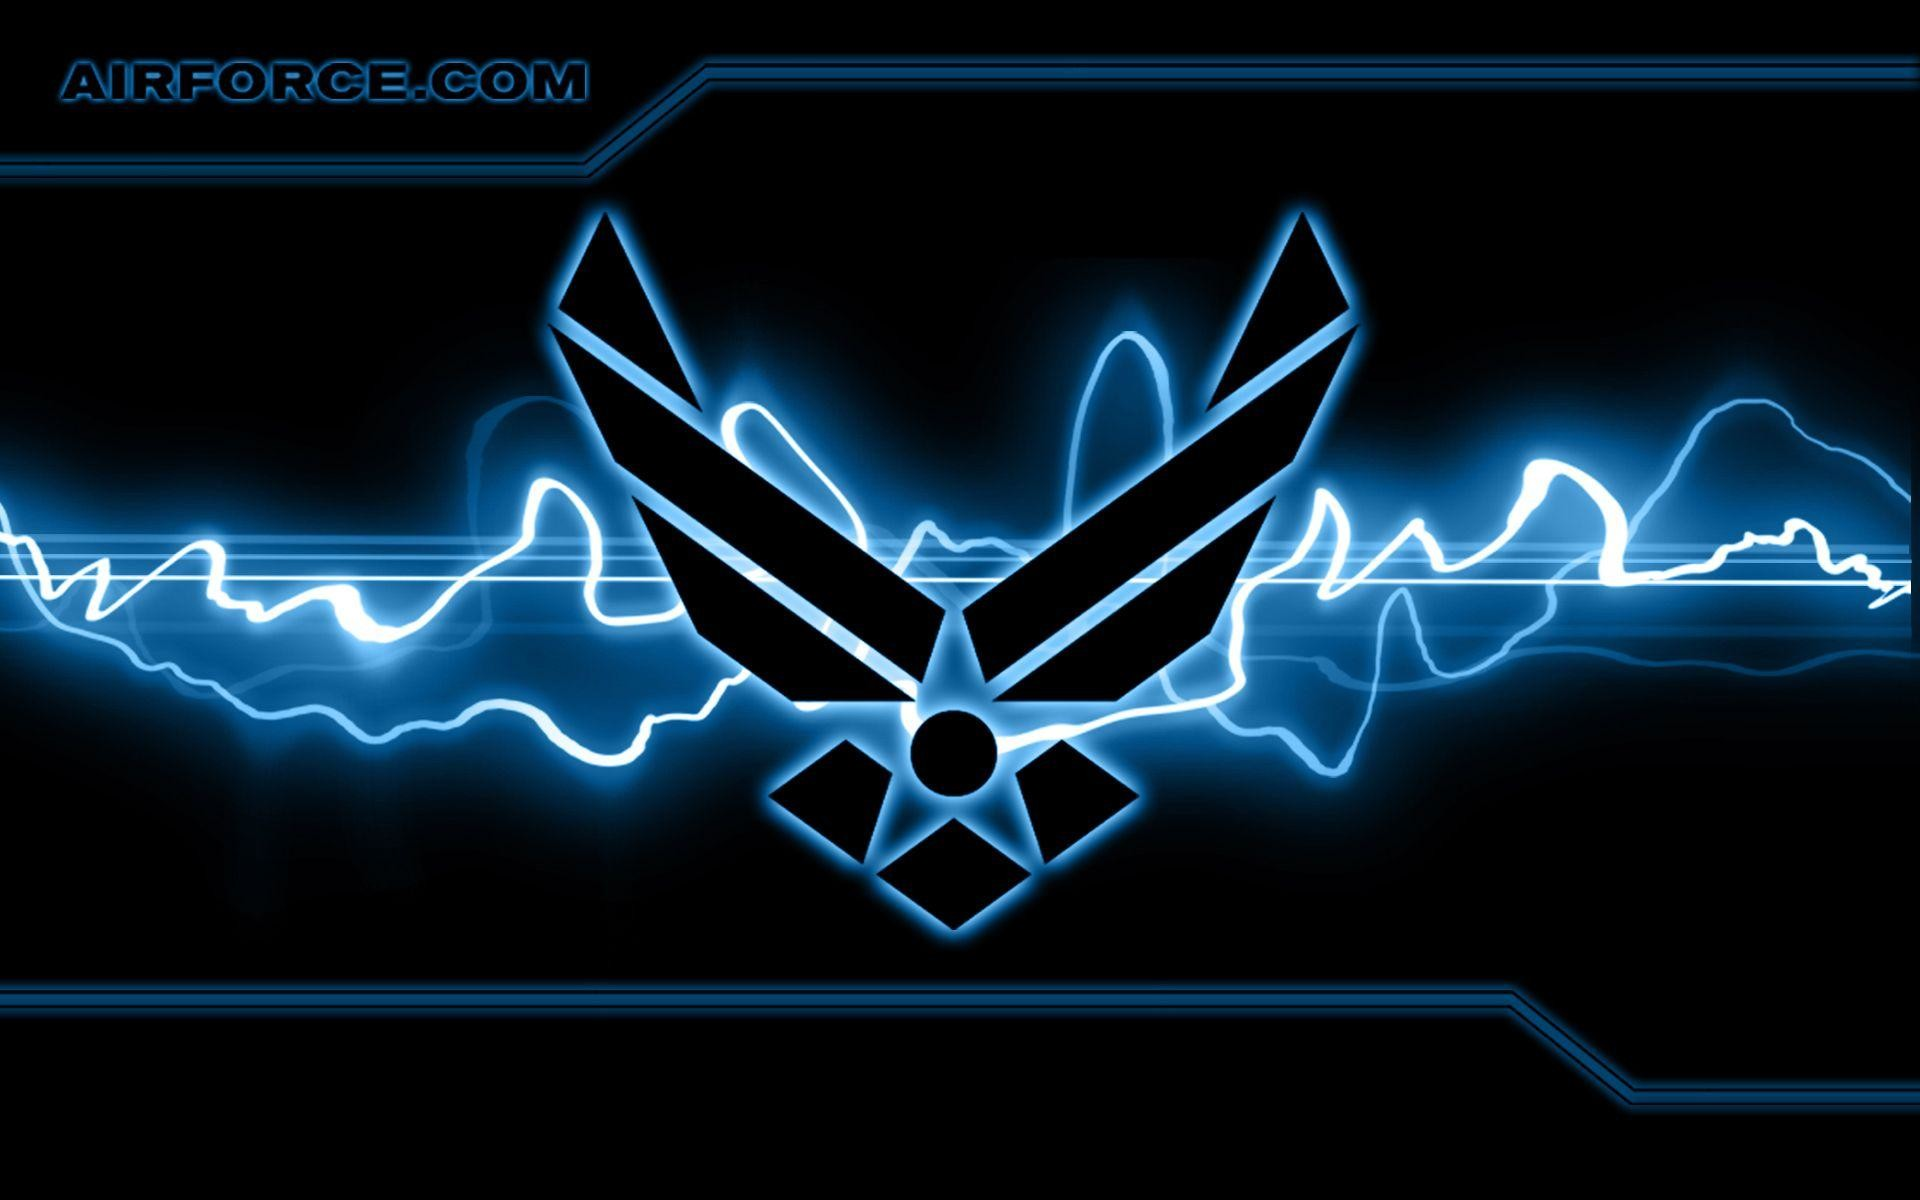 1920x1200 - Air Force Wallpaper for iPhone 22